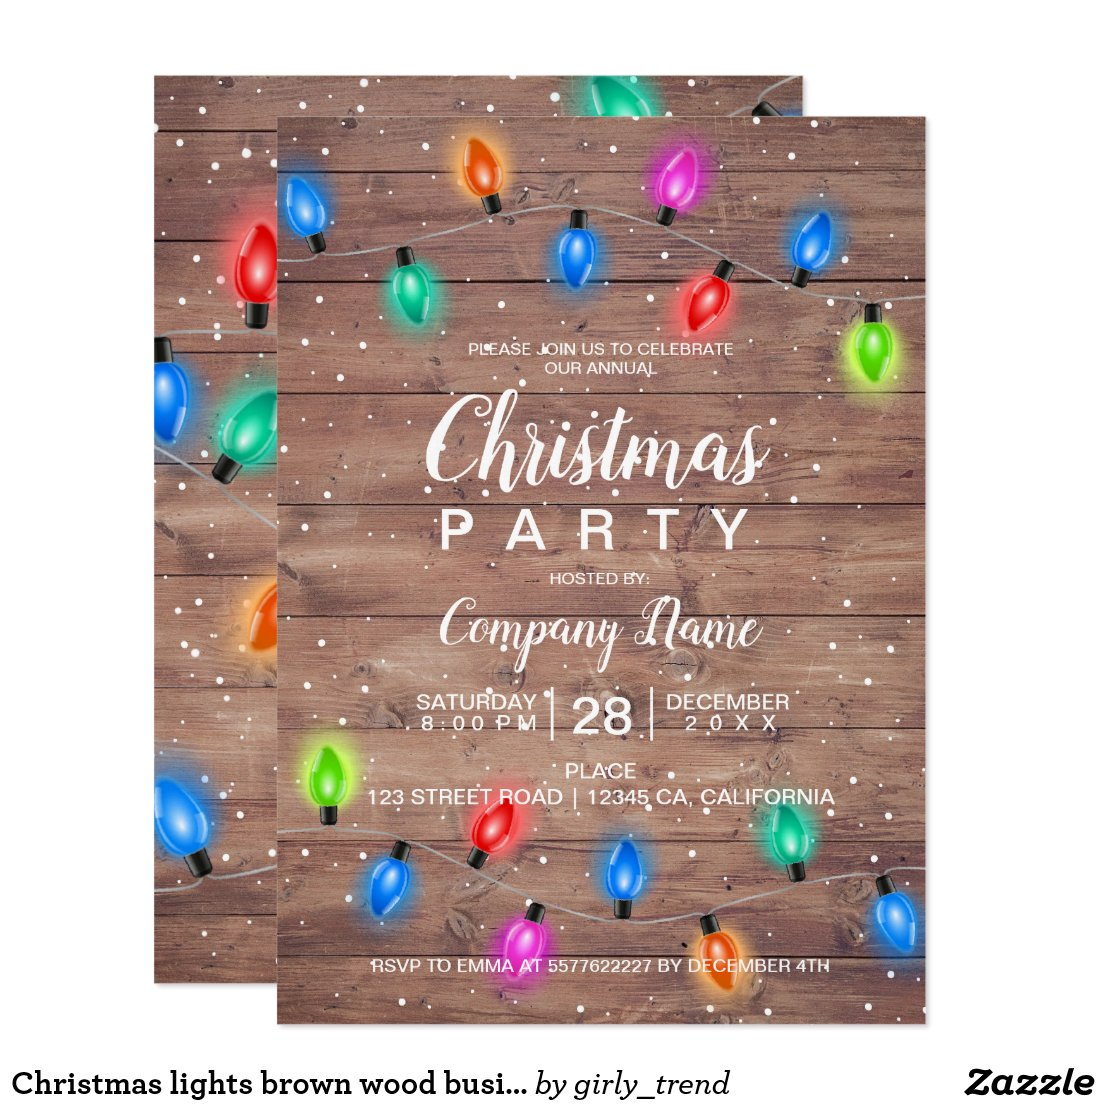 Christmas lights brown wood business corporate invitation